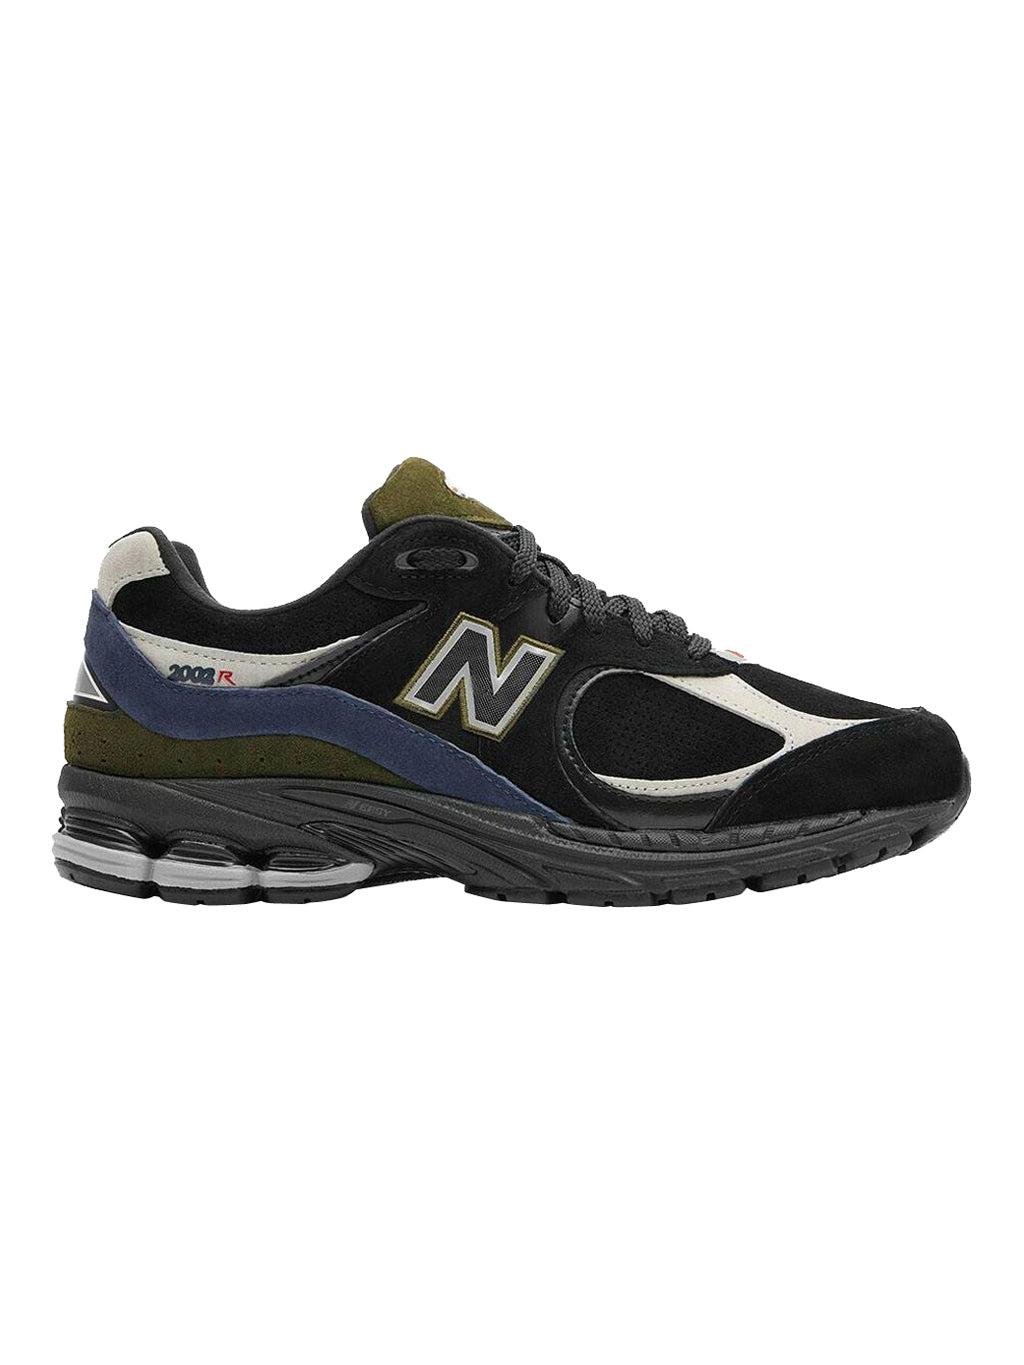 Black 2002R Running Shoes